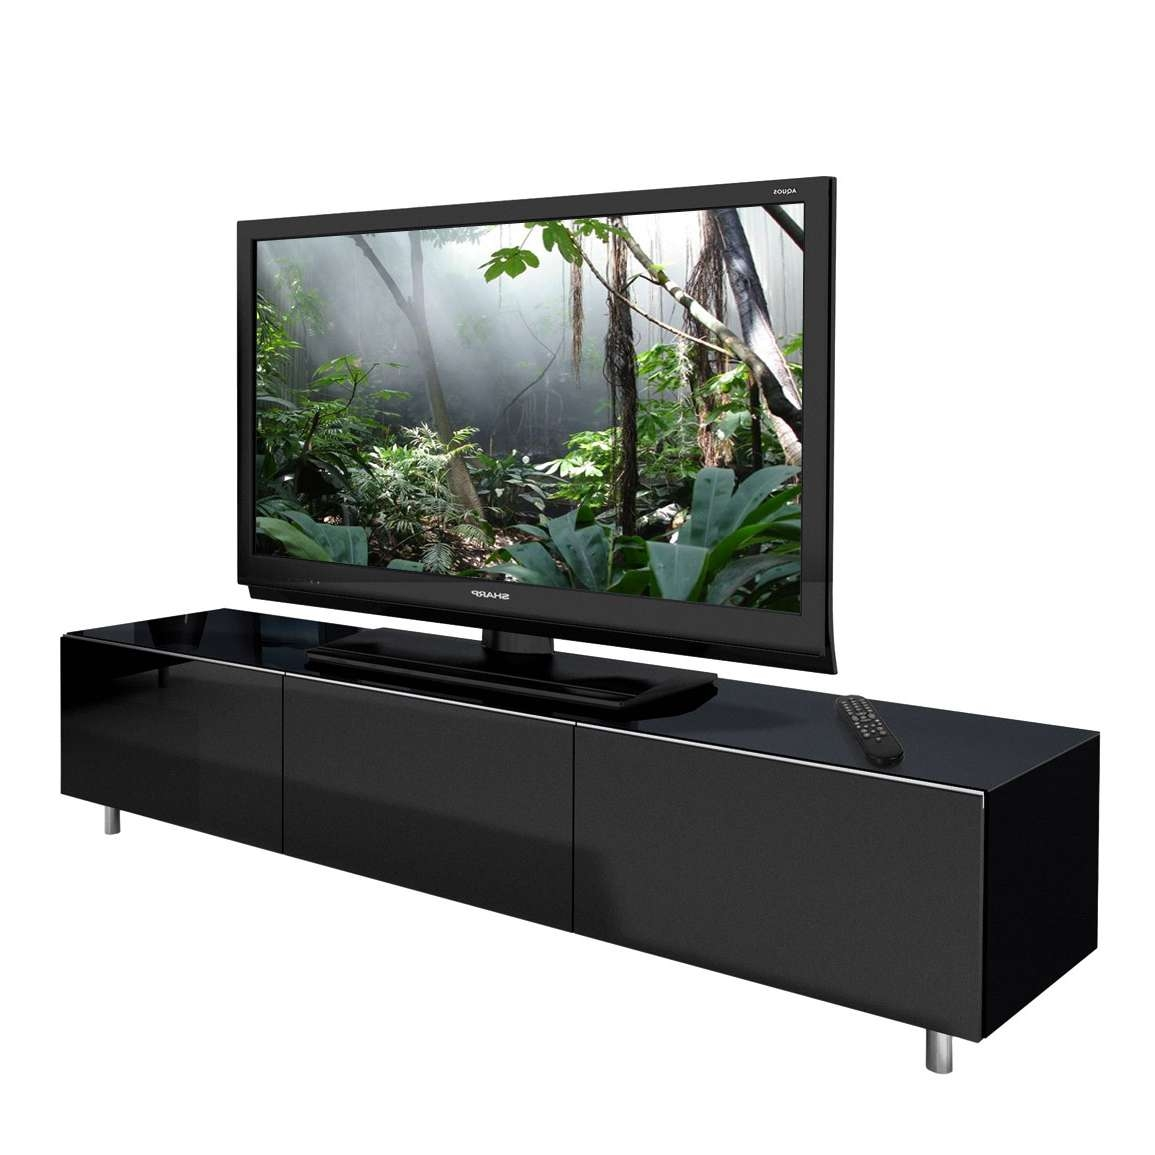 Just Racks Jrl1650 Gloss Black Tv Cabinet – Black Tv Stands Regarding Long Low Tv Cabinets (View 7 of 20)